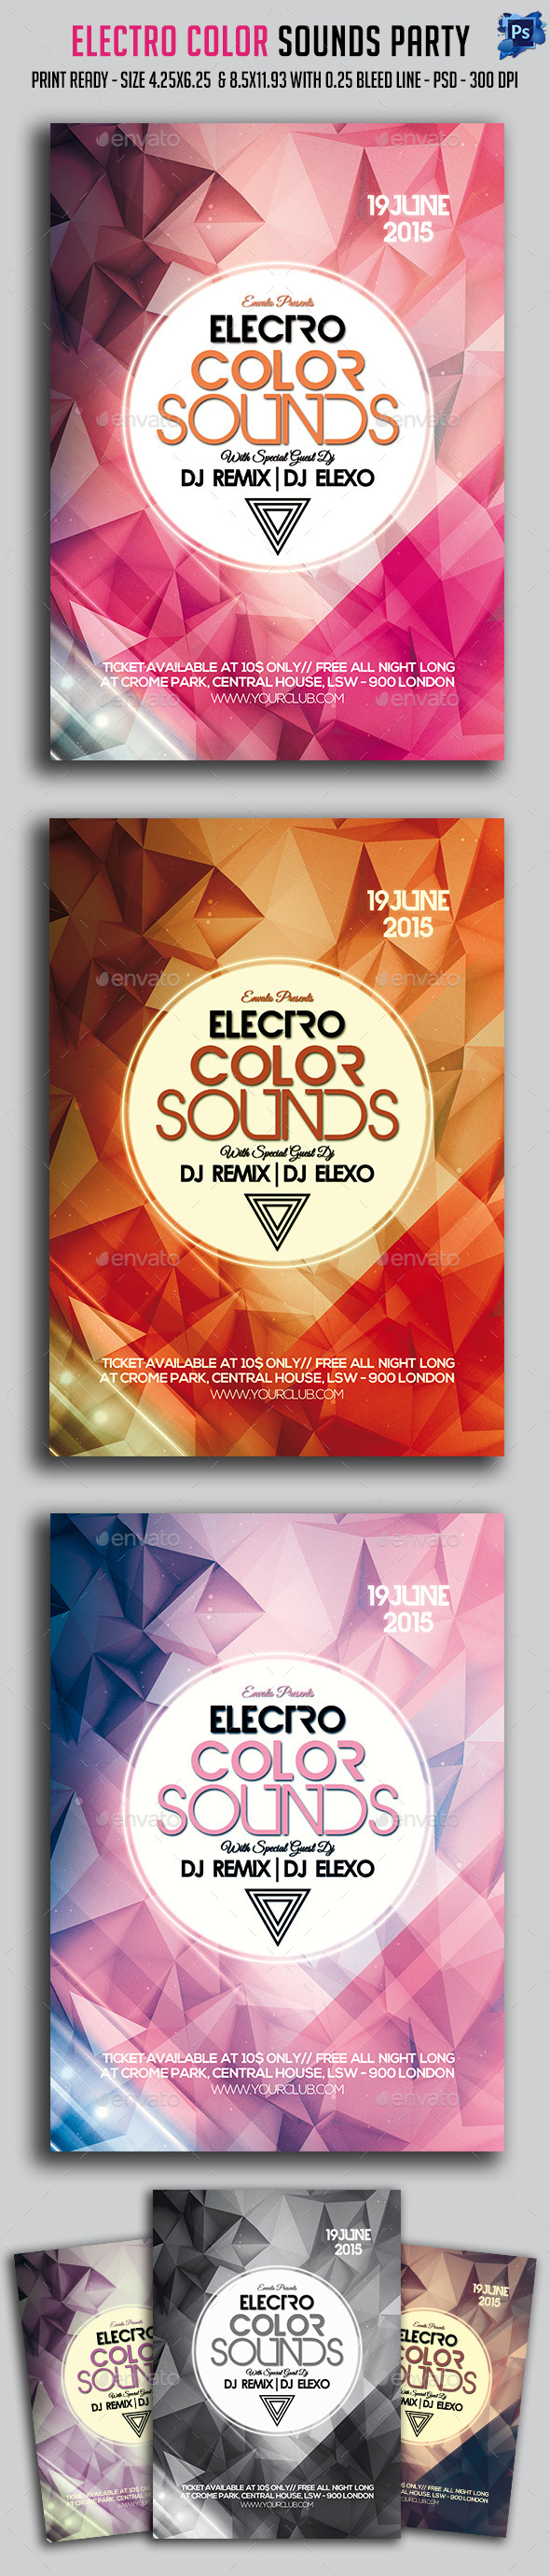 GraphicRiver Electro Color Sounds Party Flyer 11784970